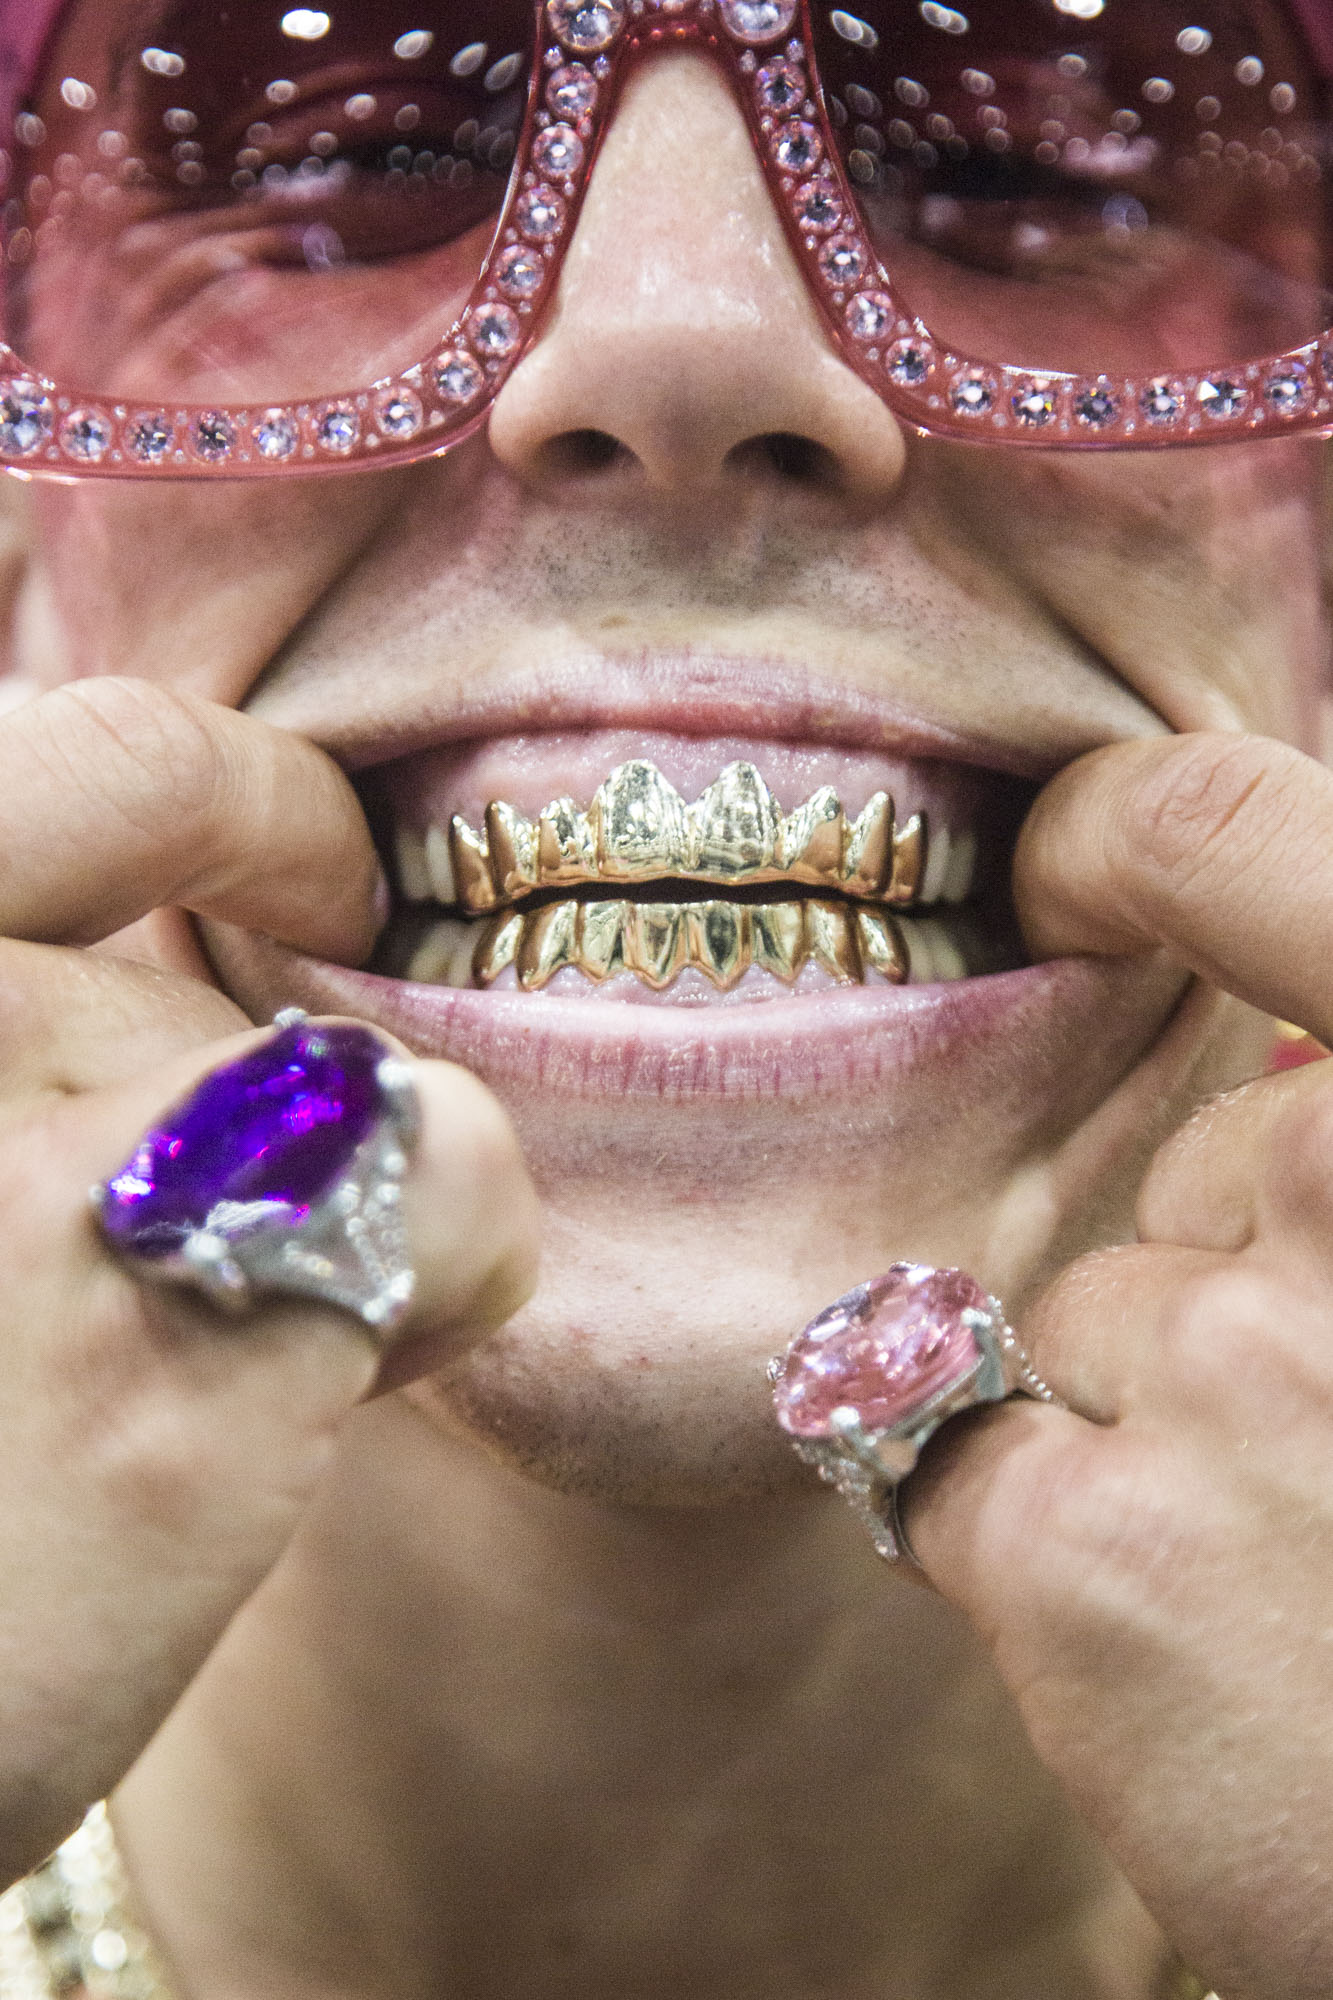 Candy Ken shows off his grills during RuPaul's DragCon LA in Los Angeles, Calif. on May 12, 2018.